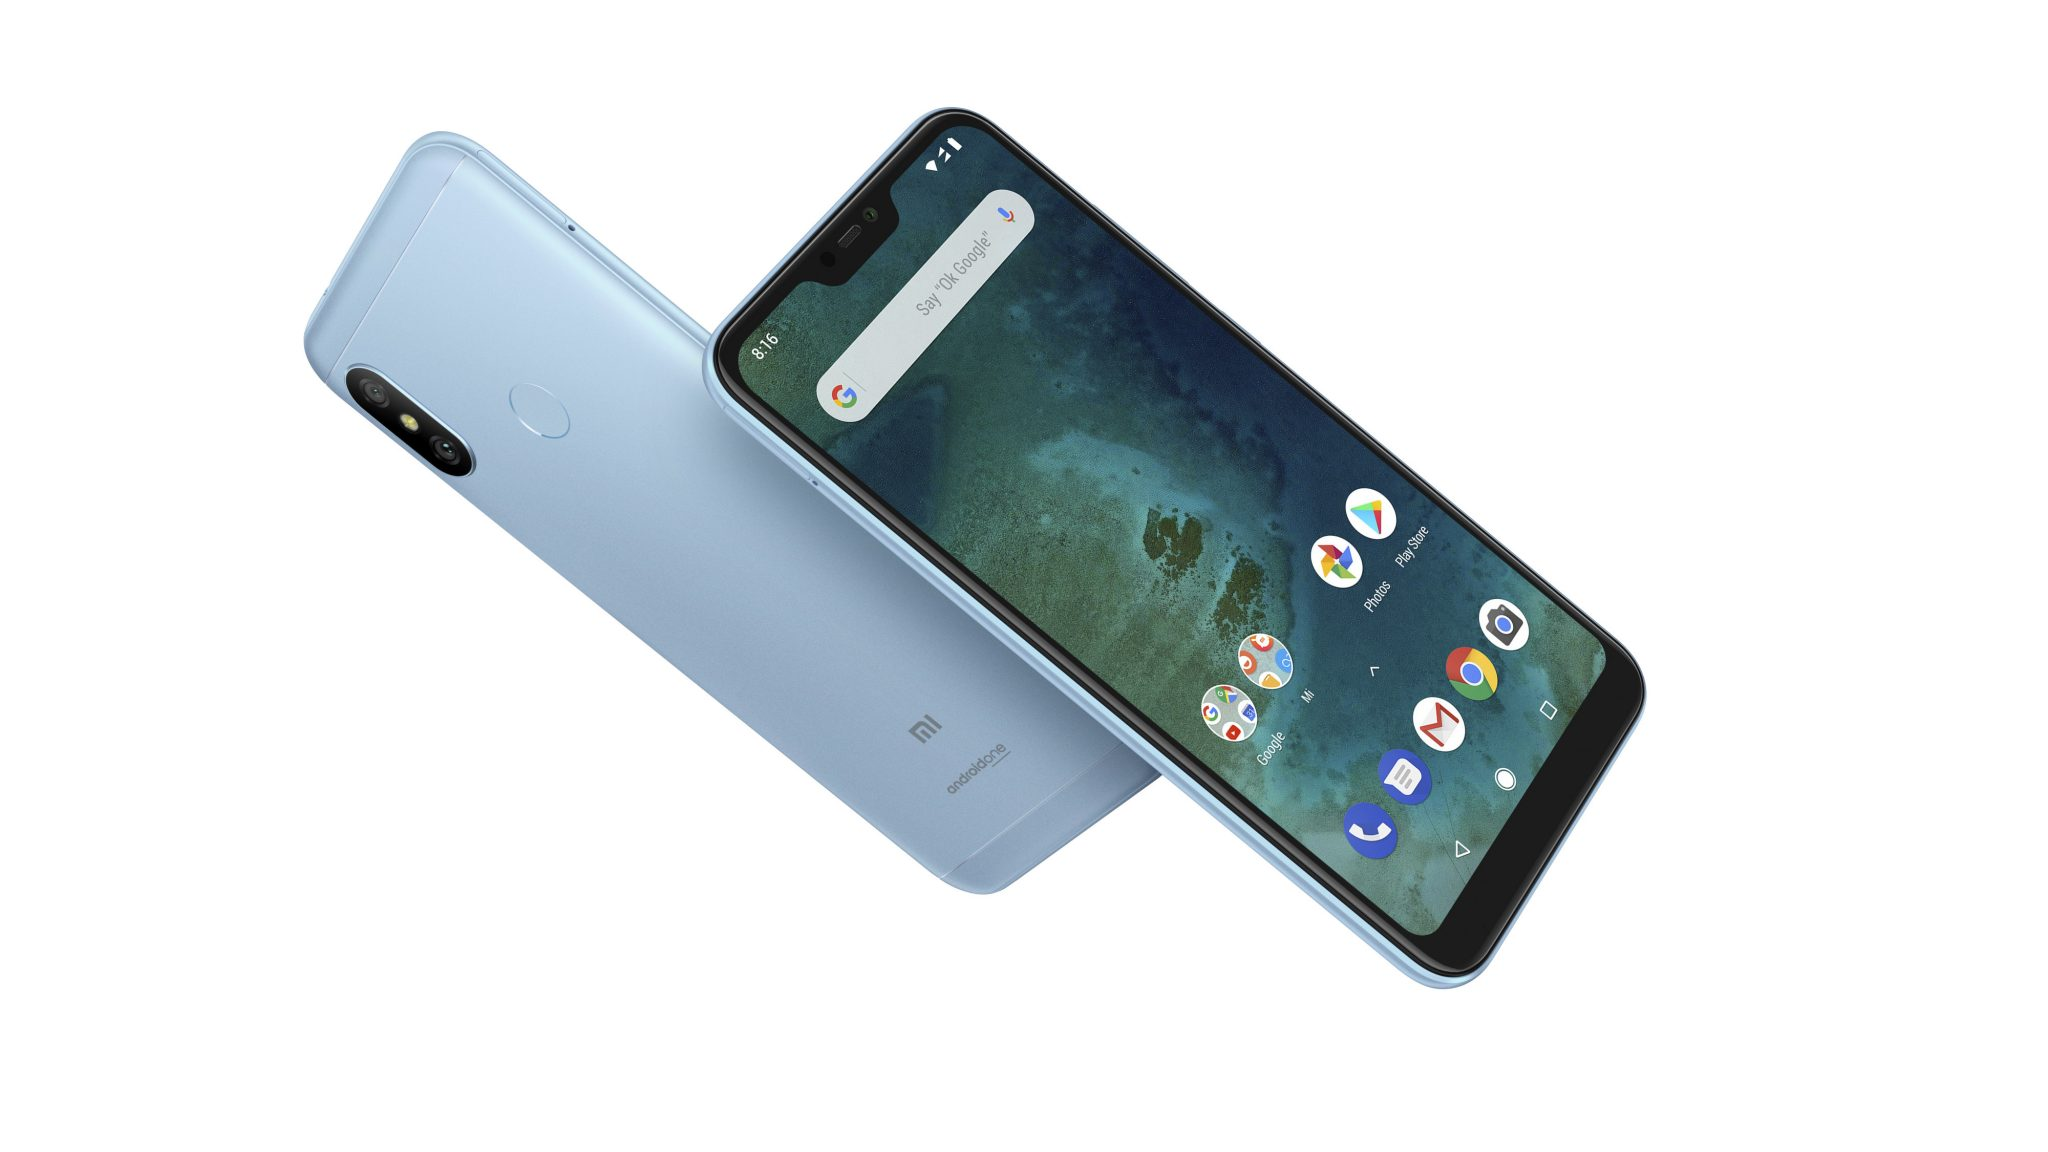 Xiaomi Mi A2 and Mi A2 Lite are now official - Here's all you need to know 10